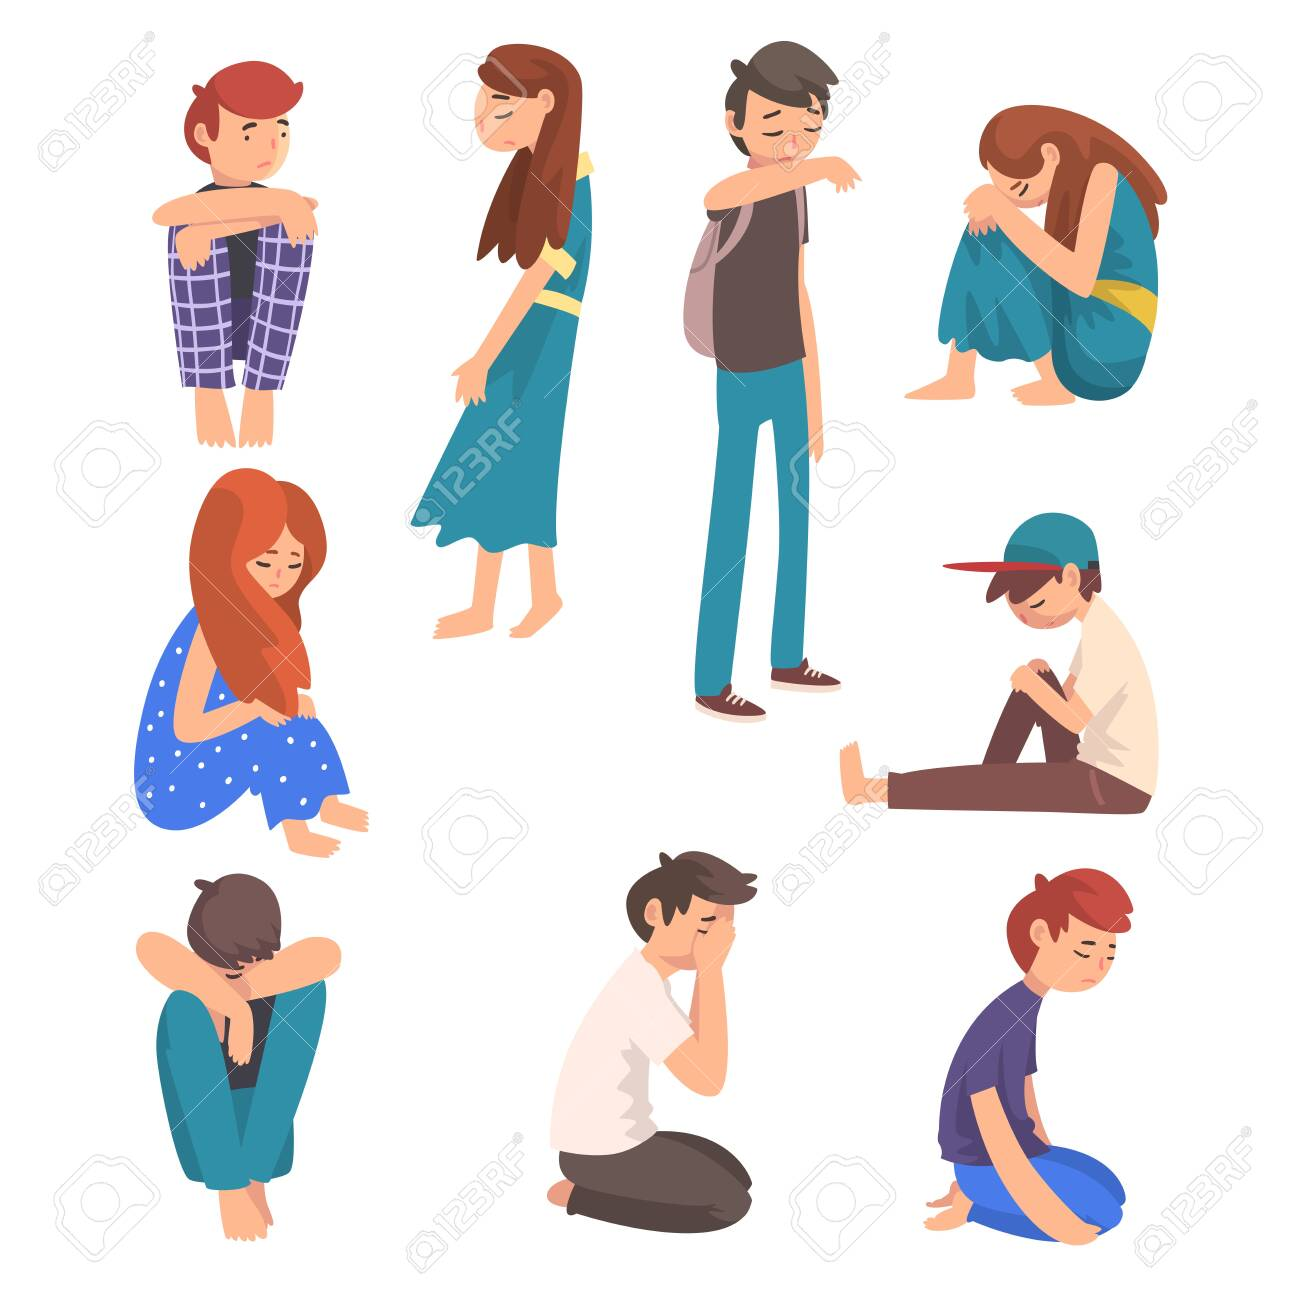 Unhappy Sad Boys and Girls Set, Depressed, Lonely, Anxious, Abused Teenagers Having Problems, Stressed Students Vector Illustration on White Background. - 128165857